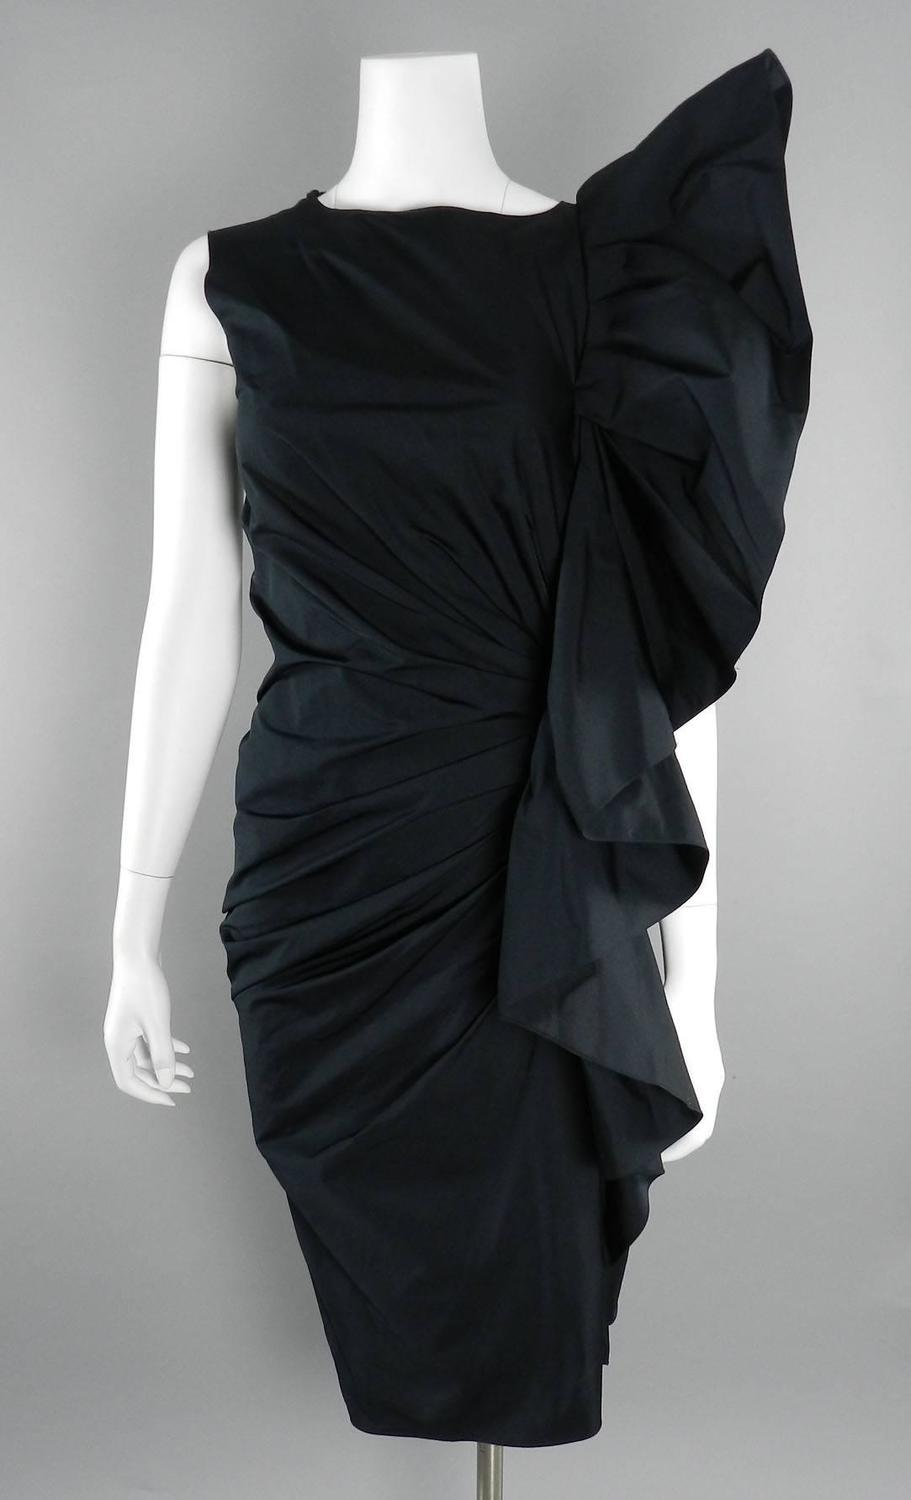 Lanvin Black Ruffle 10 Year Anniversary Dress 2012 At